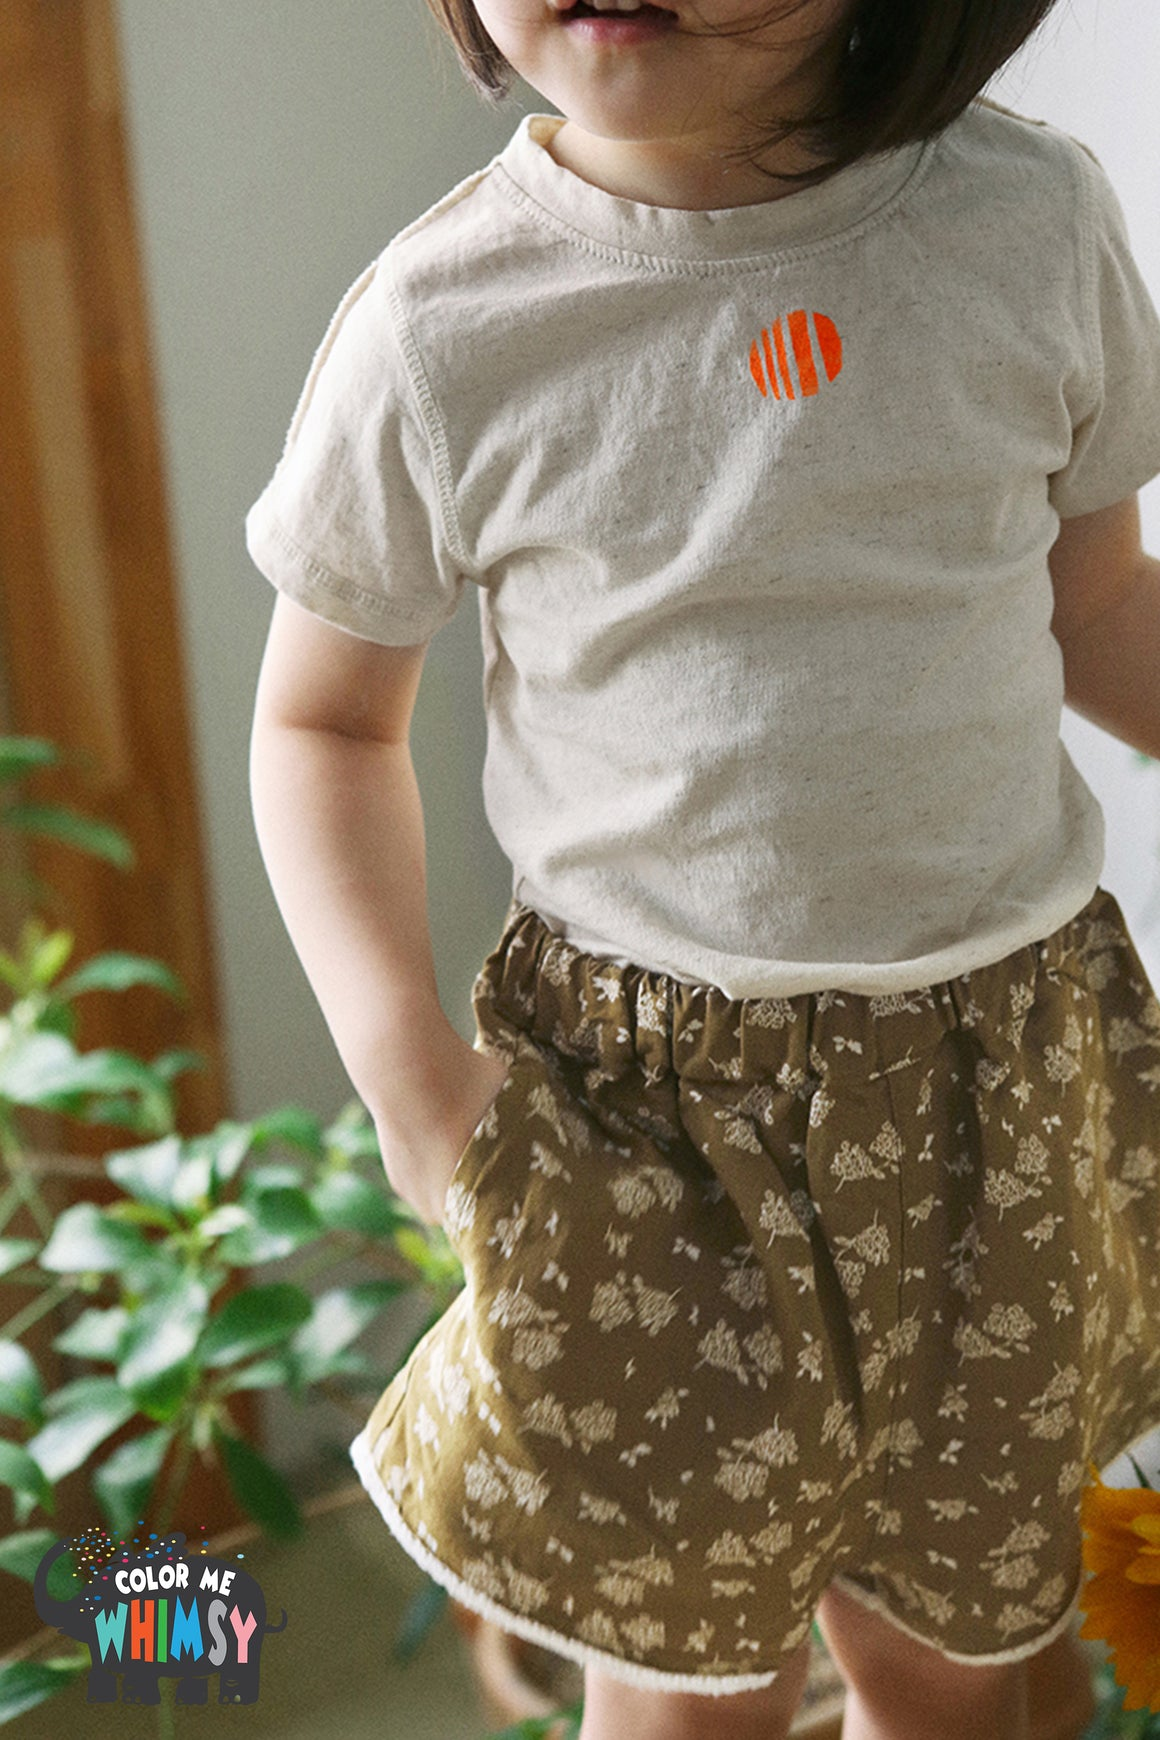 BN Skinny T-shirt at Color Me WHIMSY Hip Kid's Fashion Ethically Made in South Korea